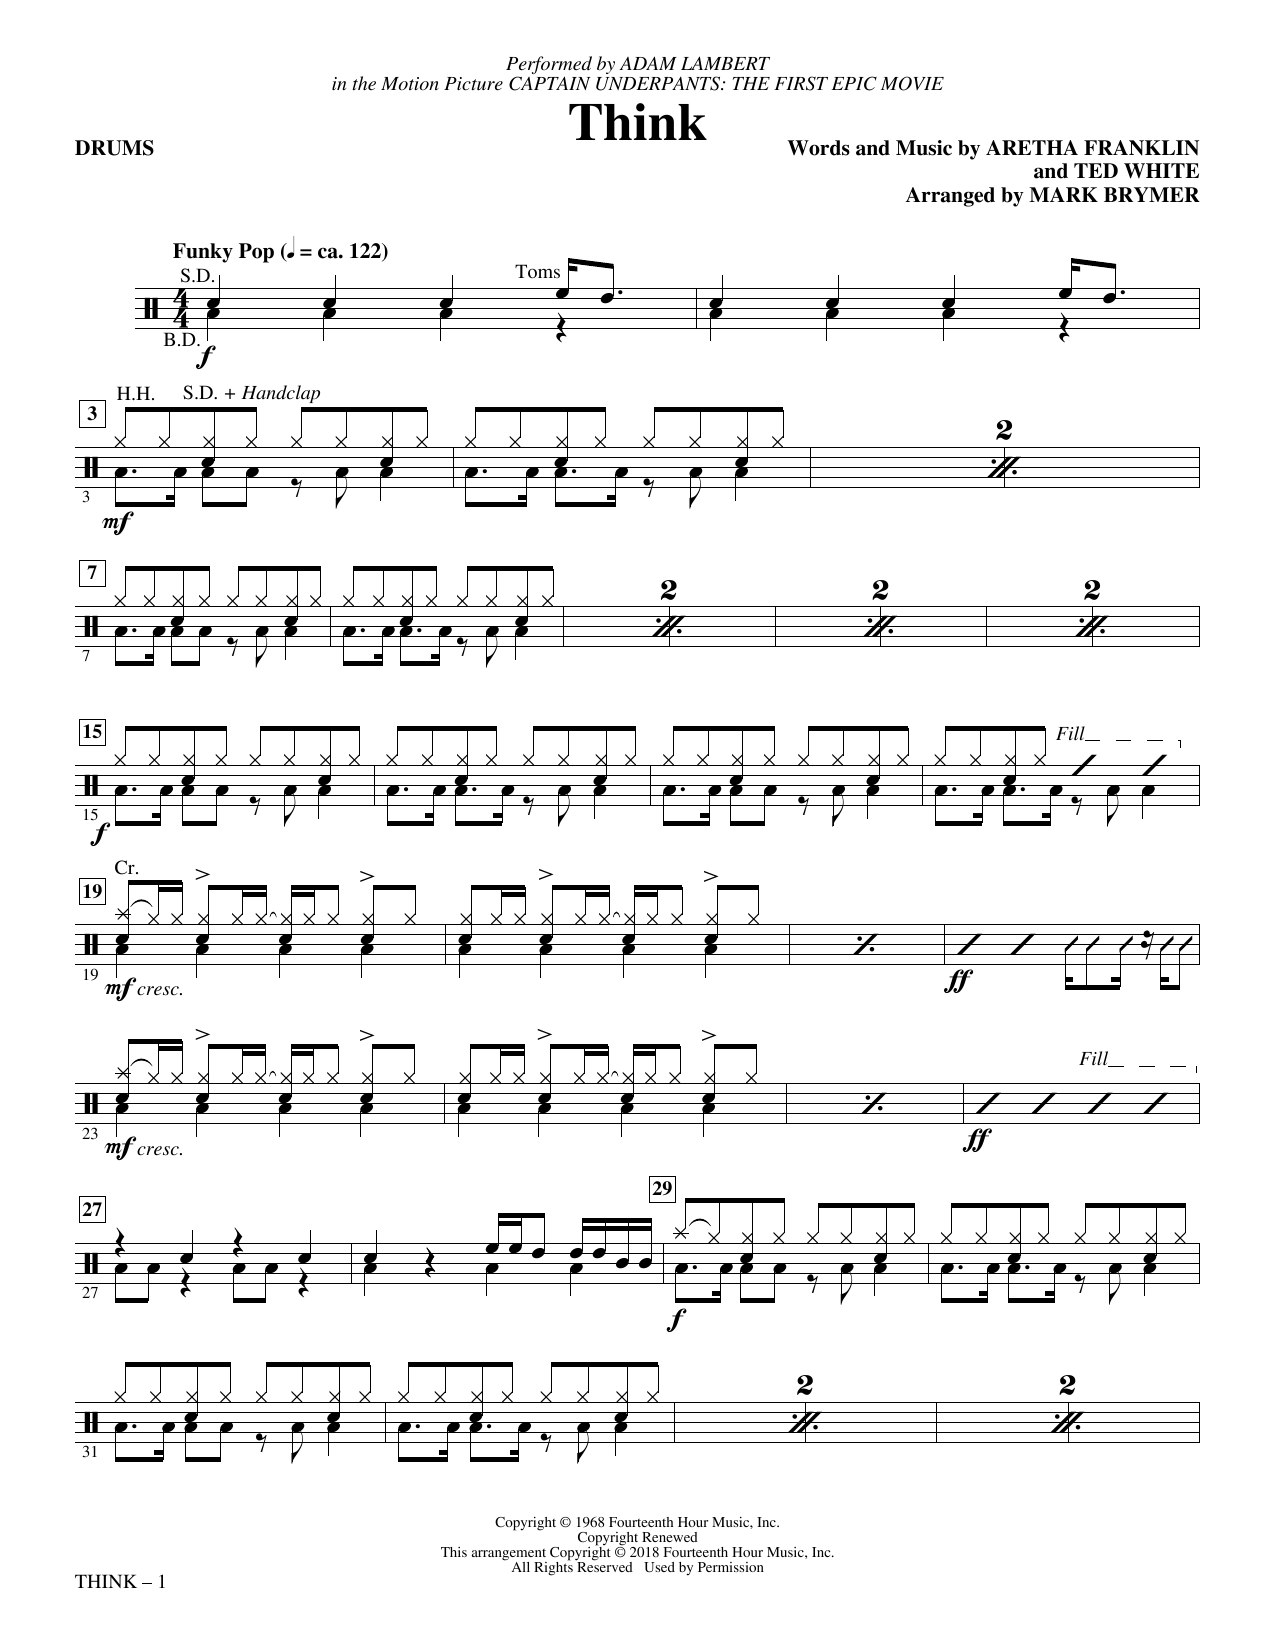 Adam Lambert 'Think (from Captain Underpants: The First Epic Movie) (Arr   Mark Brymer) - Drums' Sheet Music Notes, Chords   Download Printable Choral